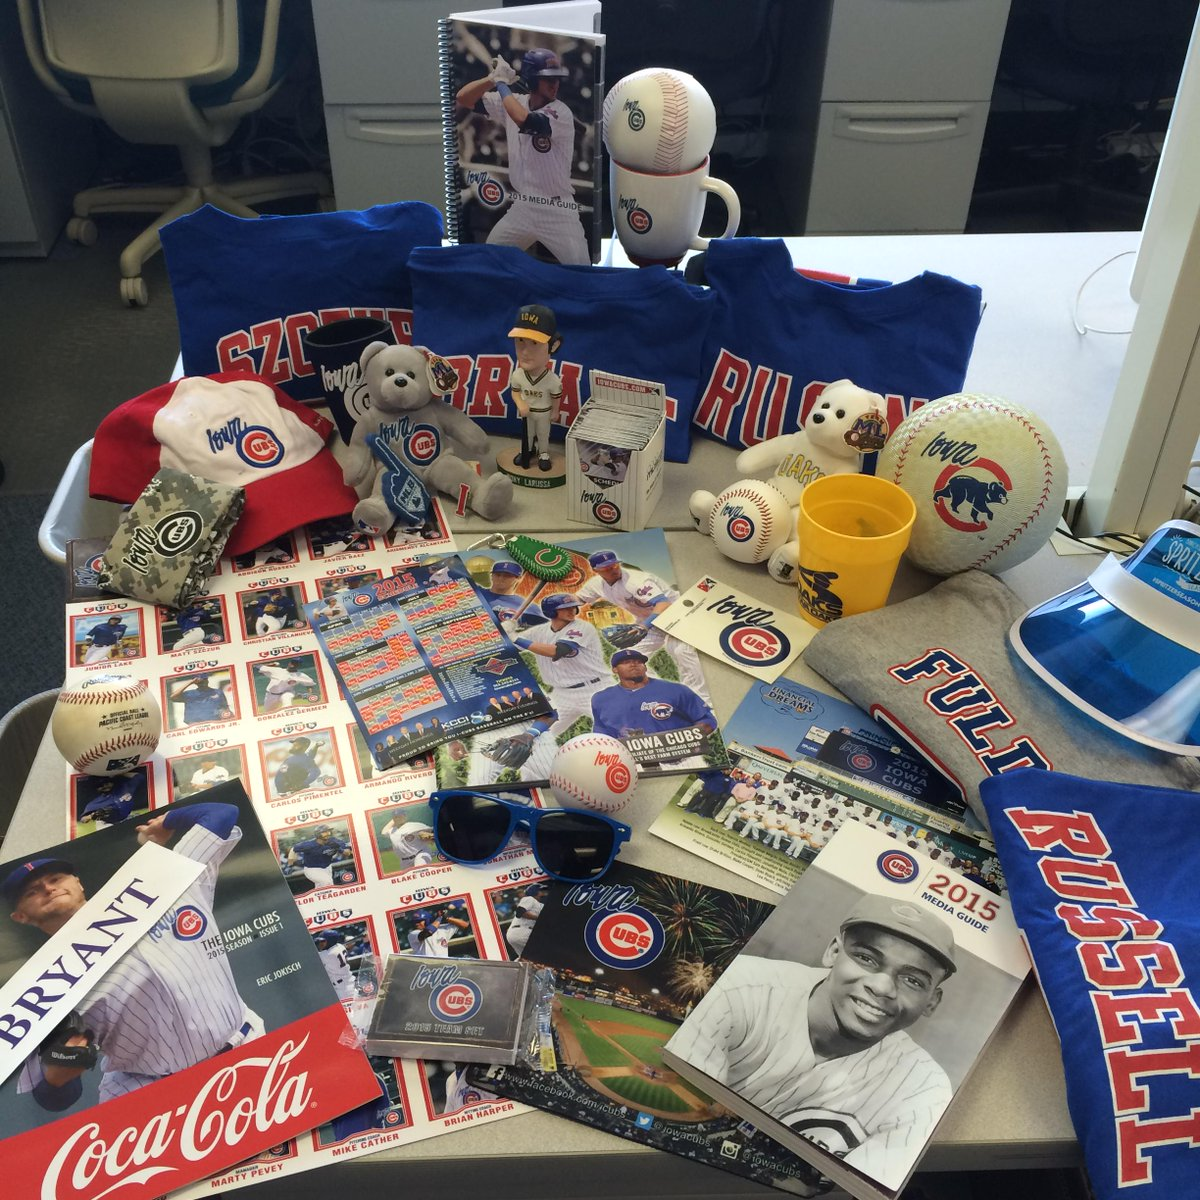 ICYMI: We're giving away this 40-item prize pack today in honor of hitting 40K on Twitter! RT for a chance to win! http://t.co/3rGXous3iZ